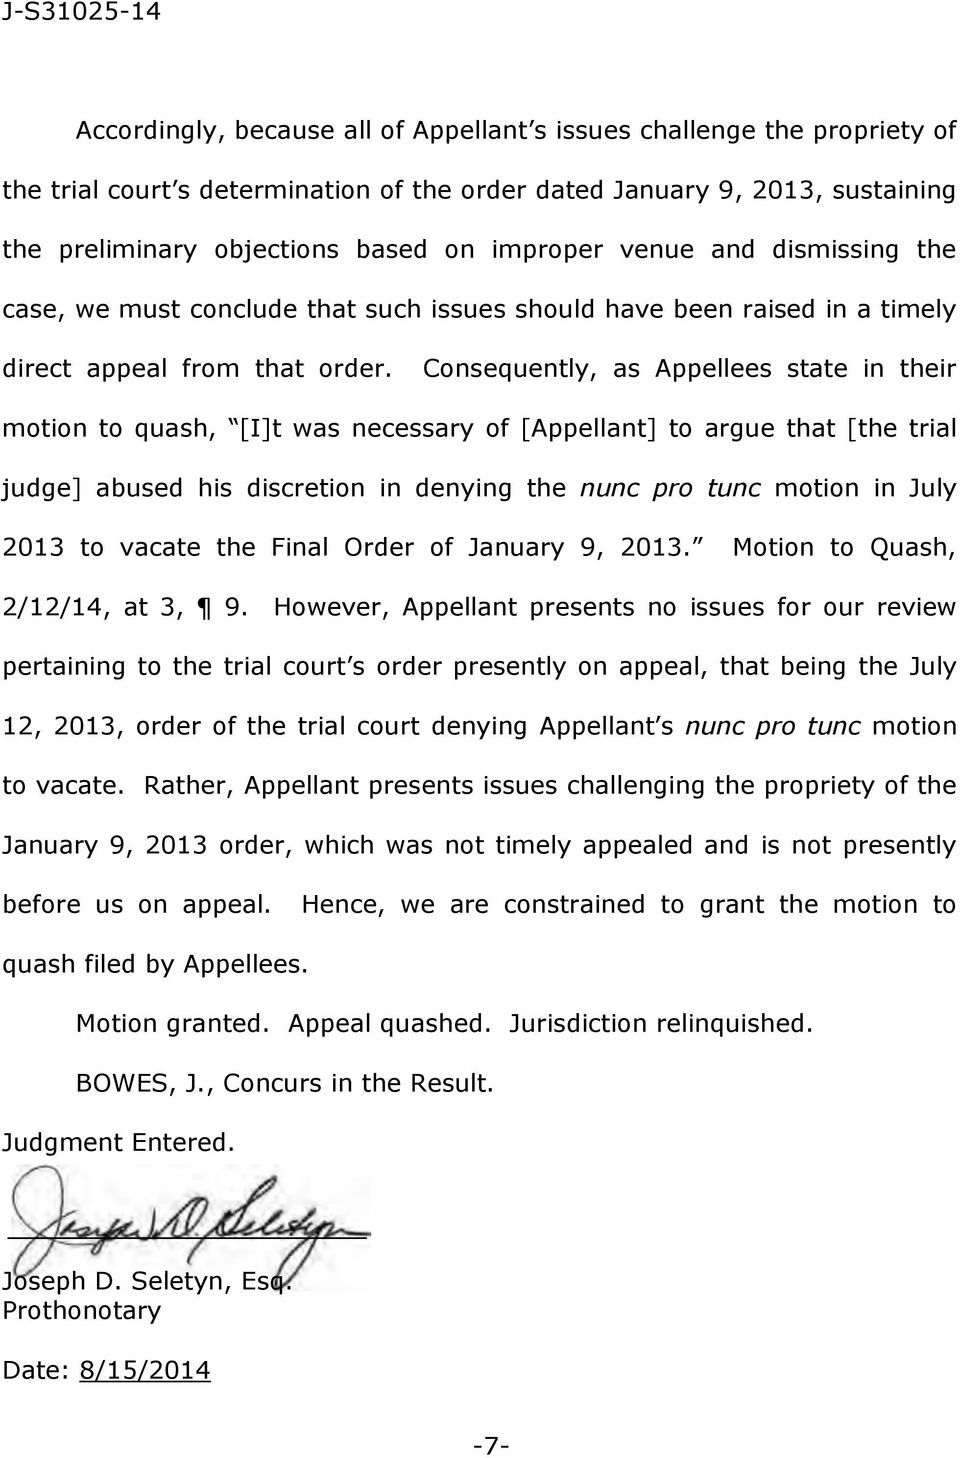 Consequently, as Appellees state in their motion to quash, [I]t was necessary of [Appellant] to argue that [the trial judge] abused his discretion in denying the nunc pro tunc motion in July 2013 to